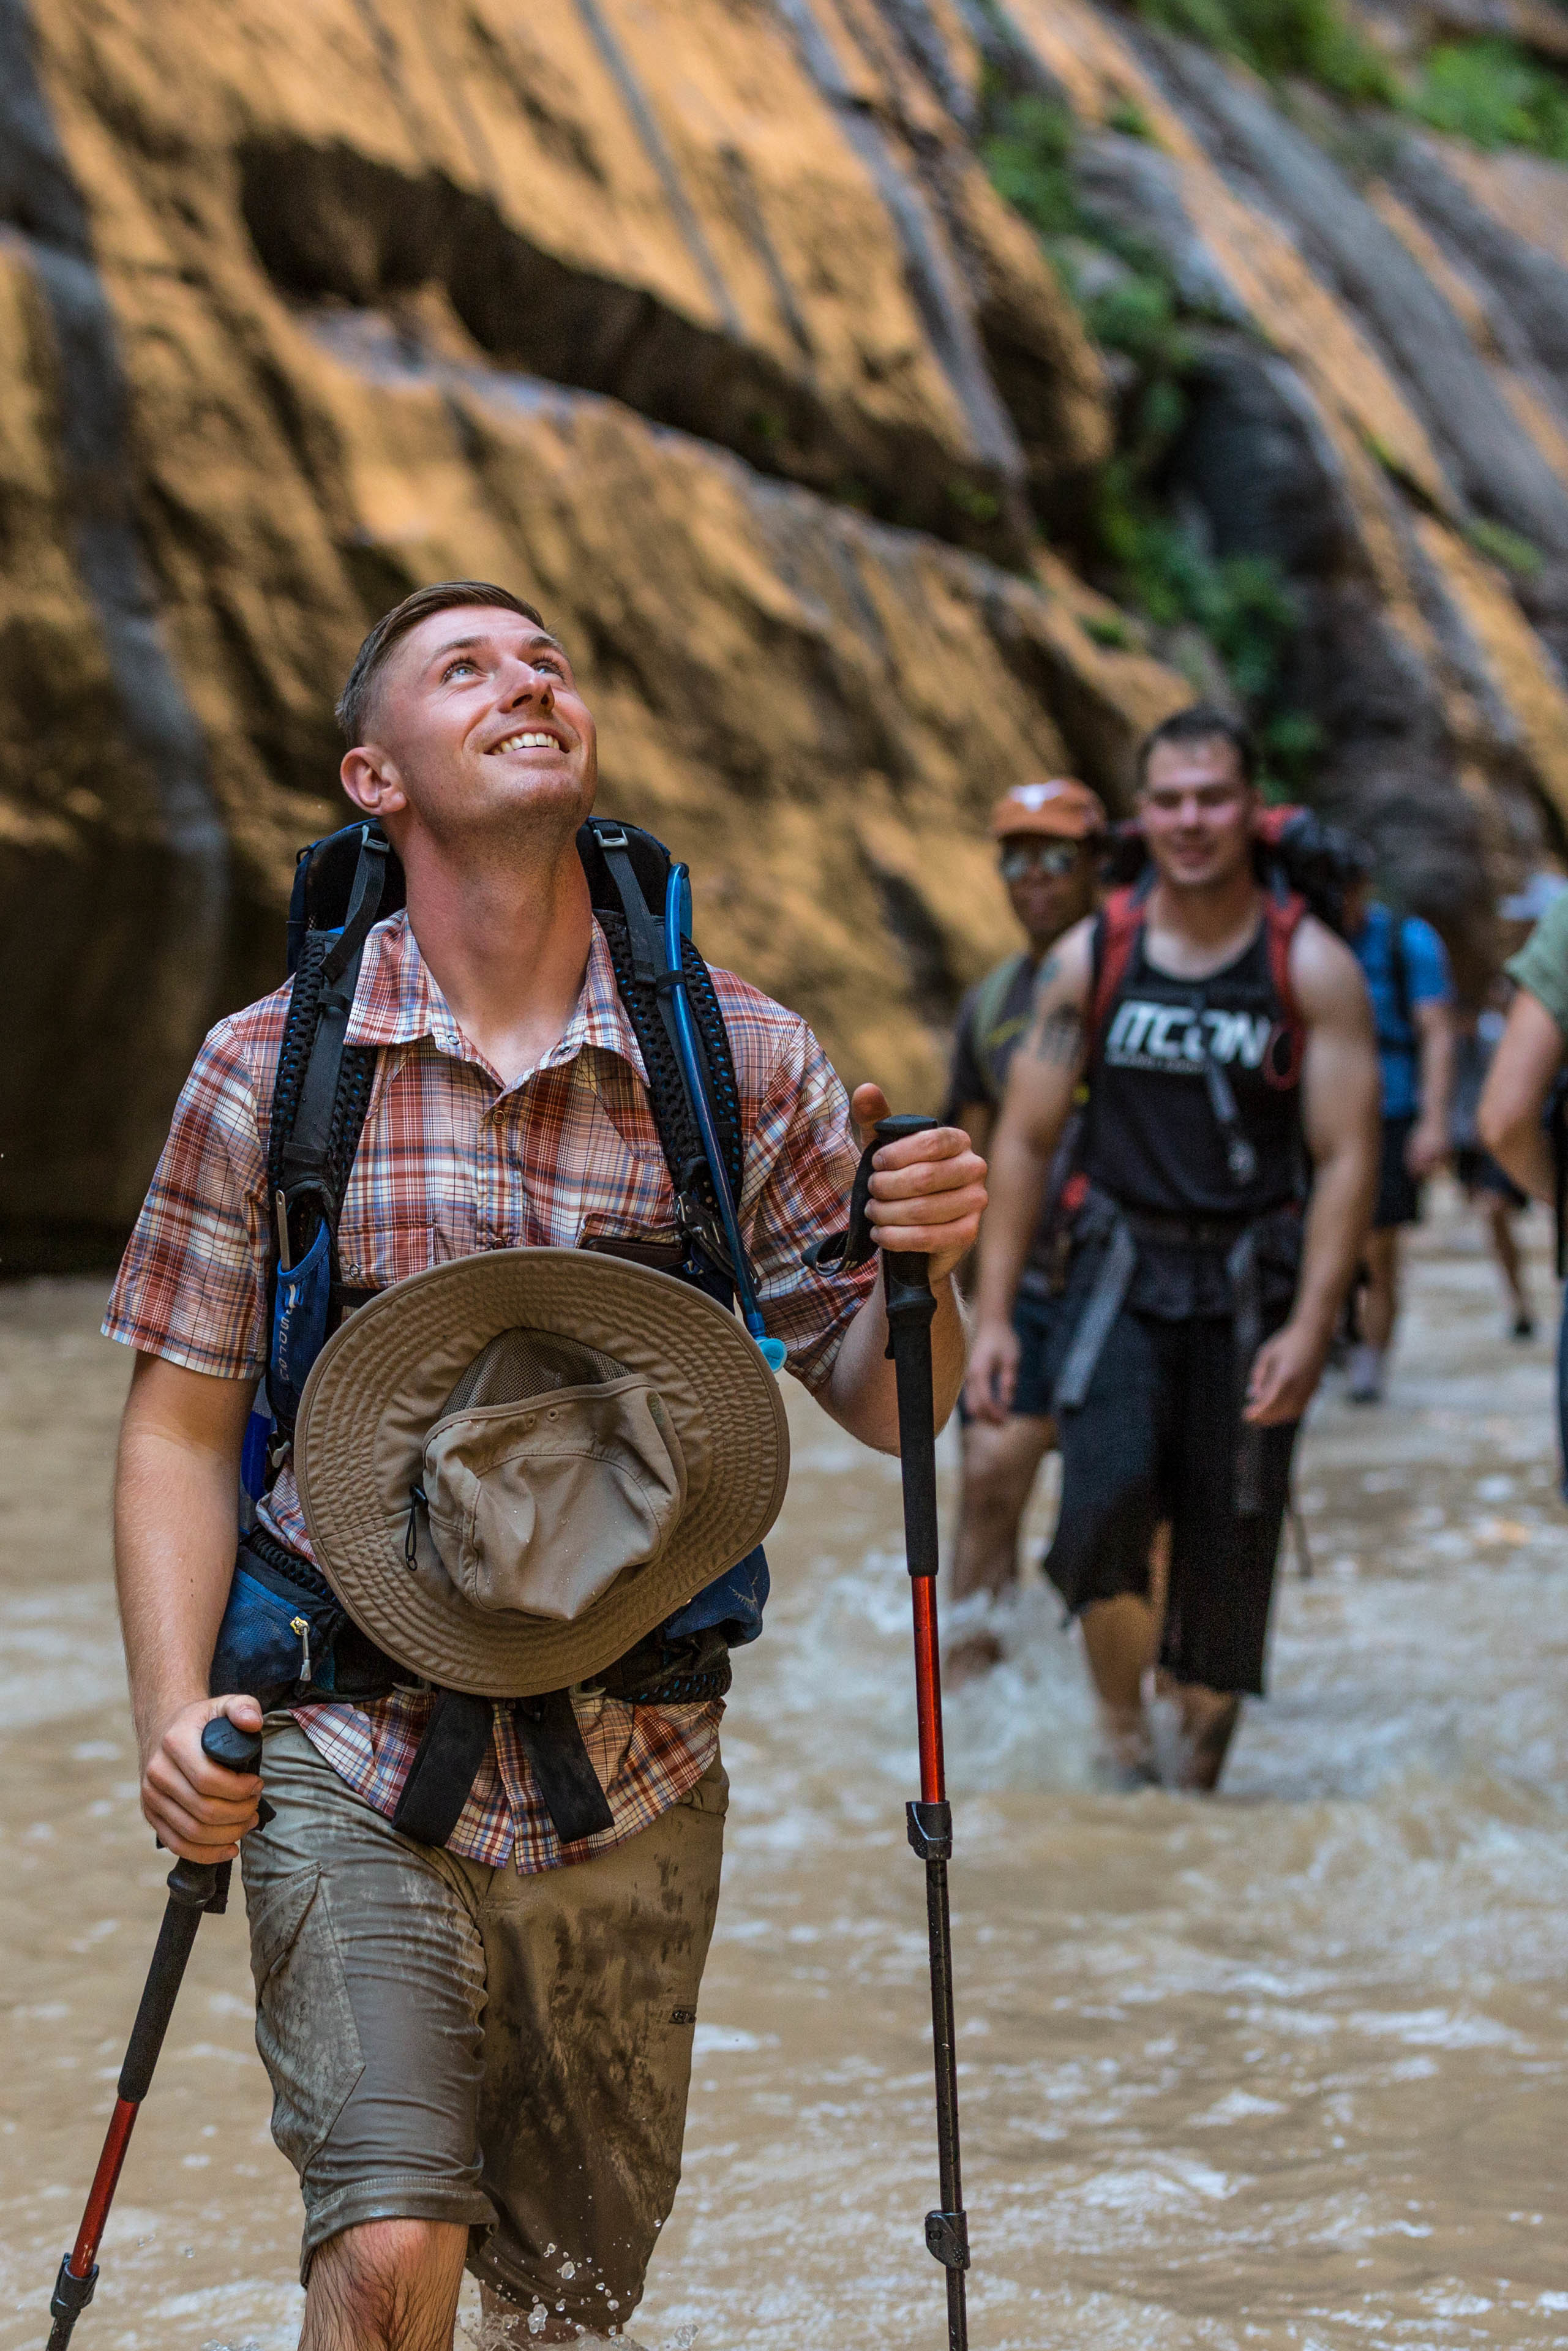 U.S. Marine Corps Sgt. Brehm Rhett, ground radio repairman, 1st Intelligence Battalion, I Marine Expeditionary Force-Information Group, admires the towering canyon walls during a hike at Zion National Park, Utah, Aug. 4, 2018. Single Marine Program trips are events only single active-duty service members and those dislocated from their spouses can participate in. (U.S. Marine Corps photo by Lance Cpl. Baylee Boggs)